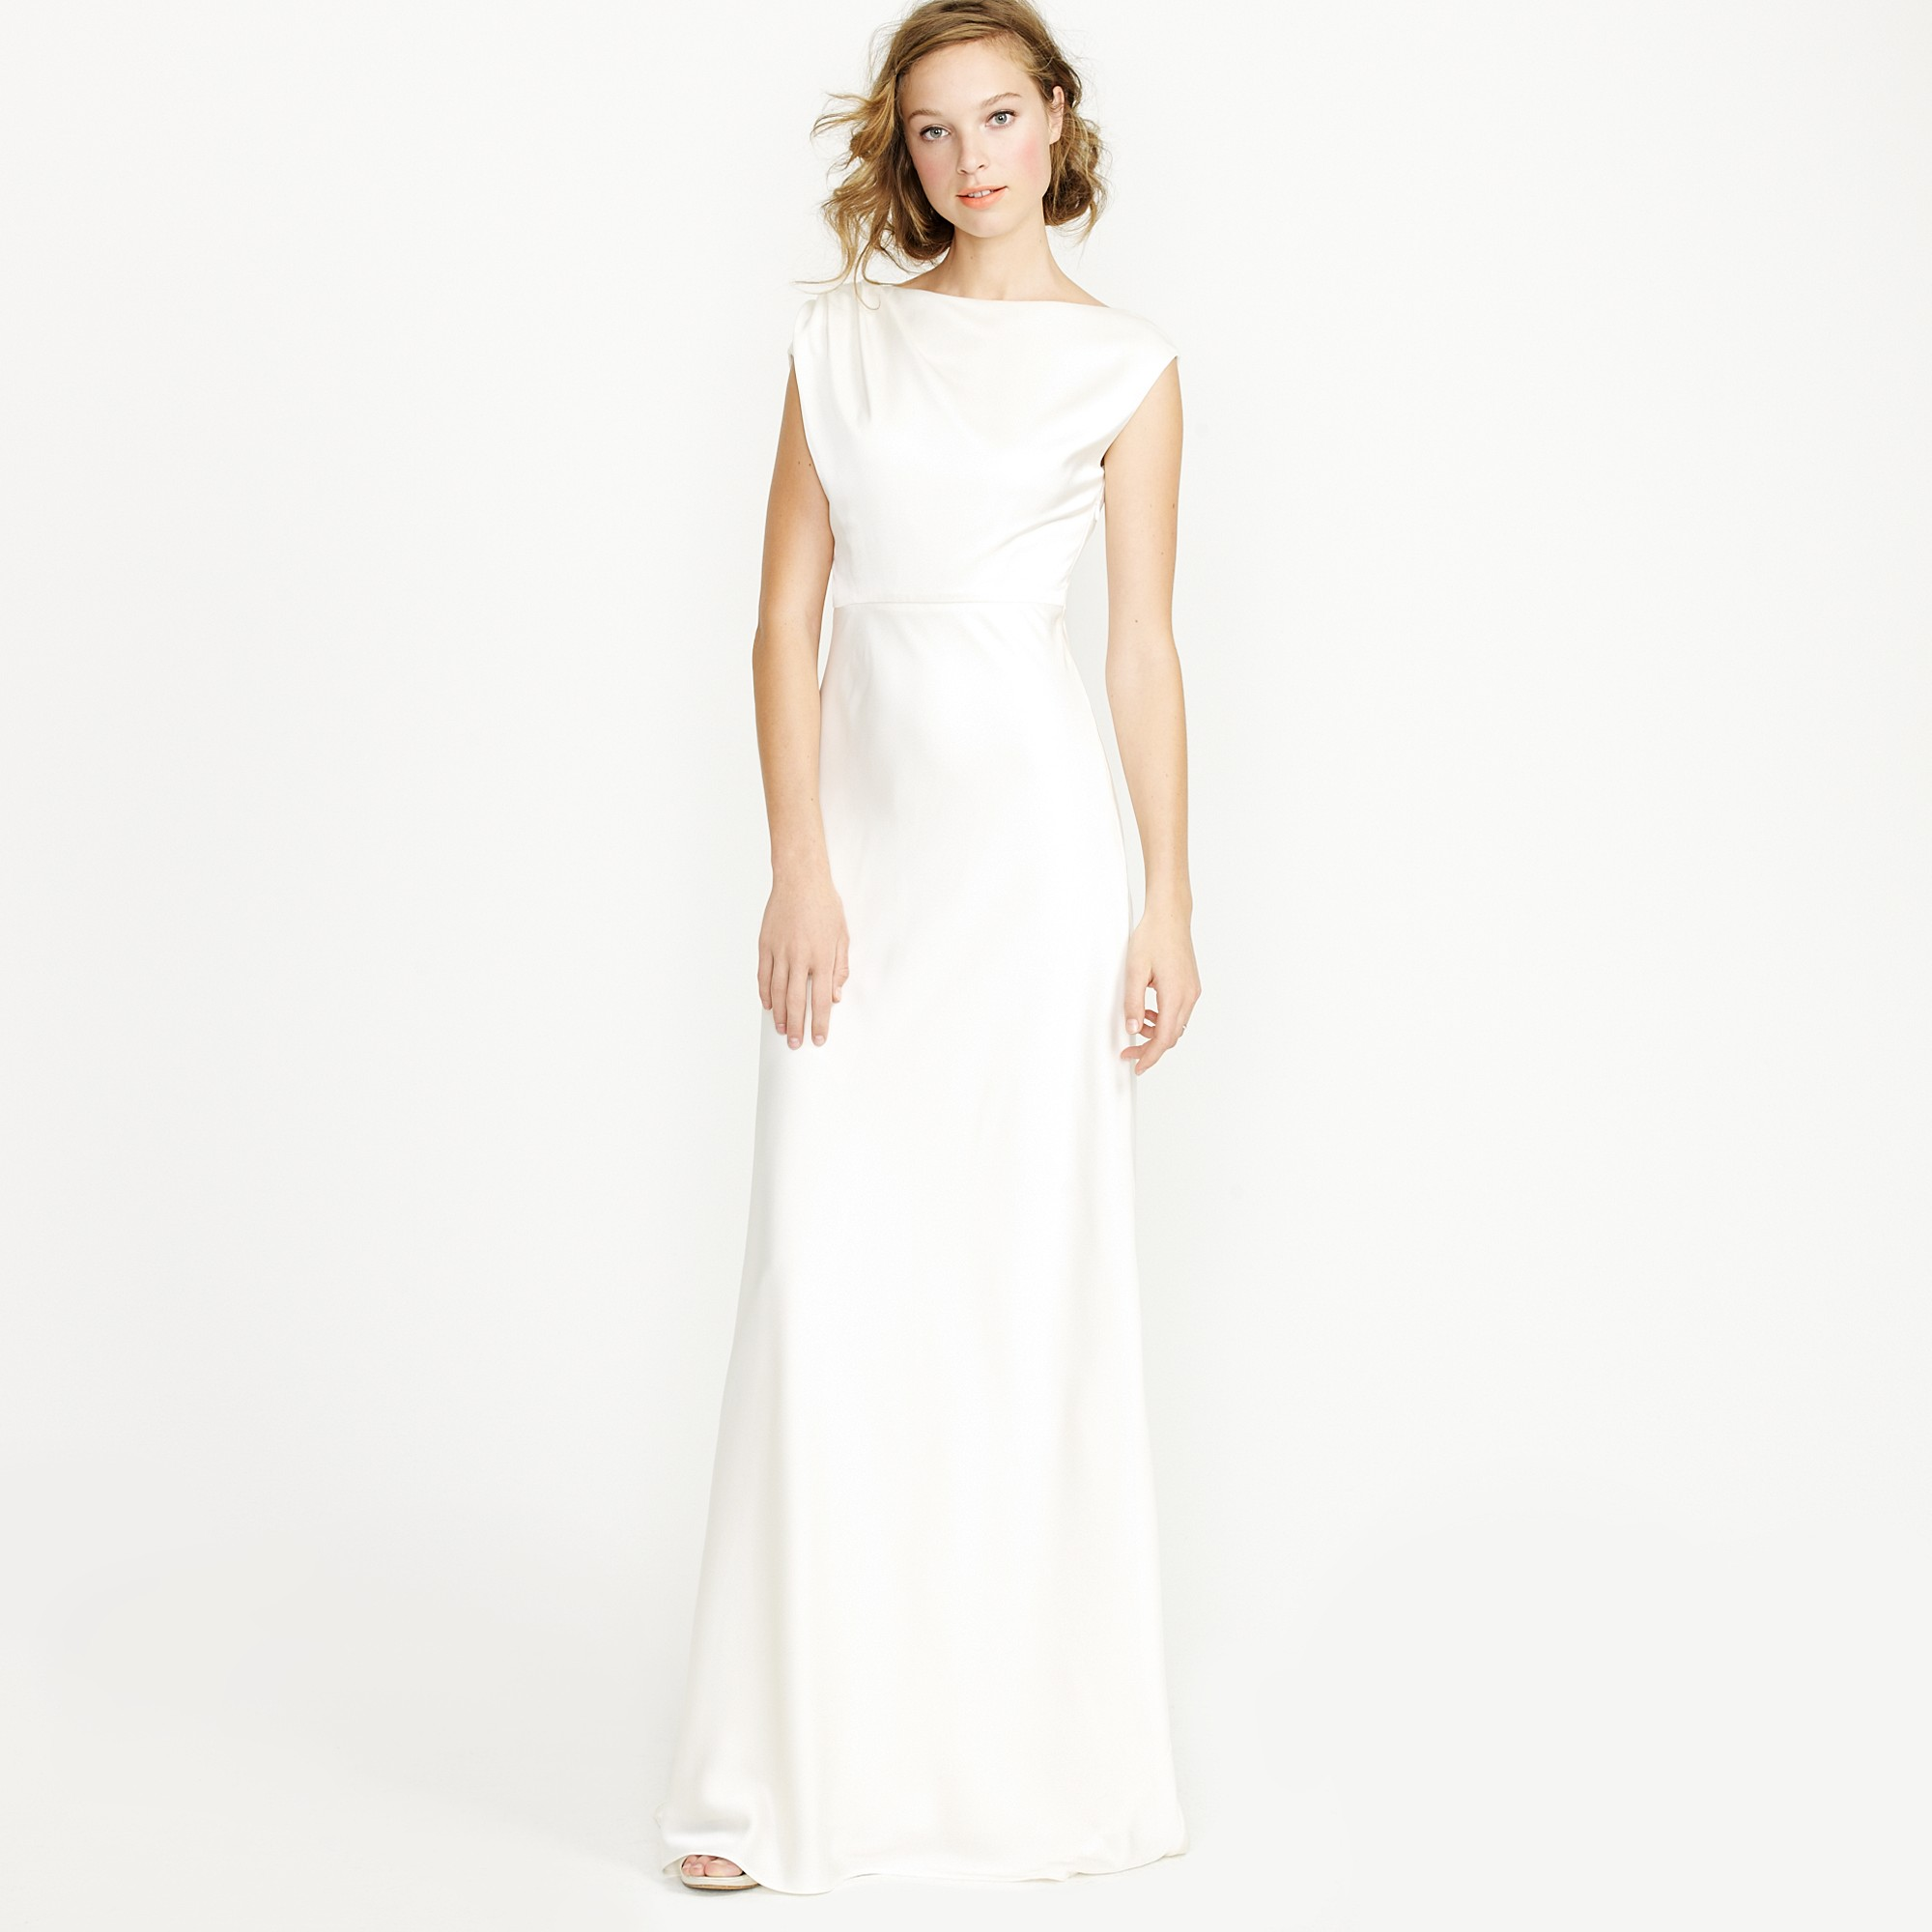 Lyst - J.Crew Carina Gown in White